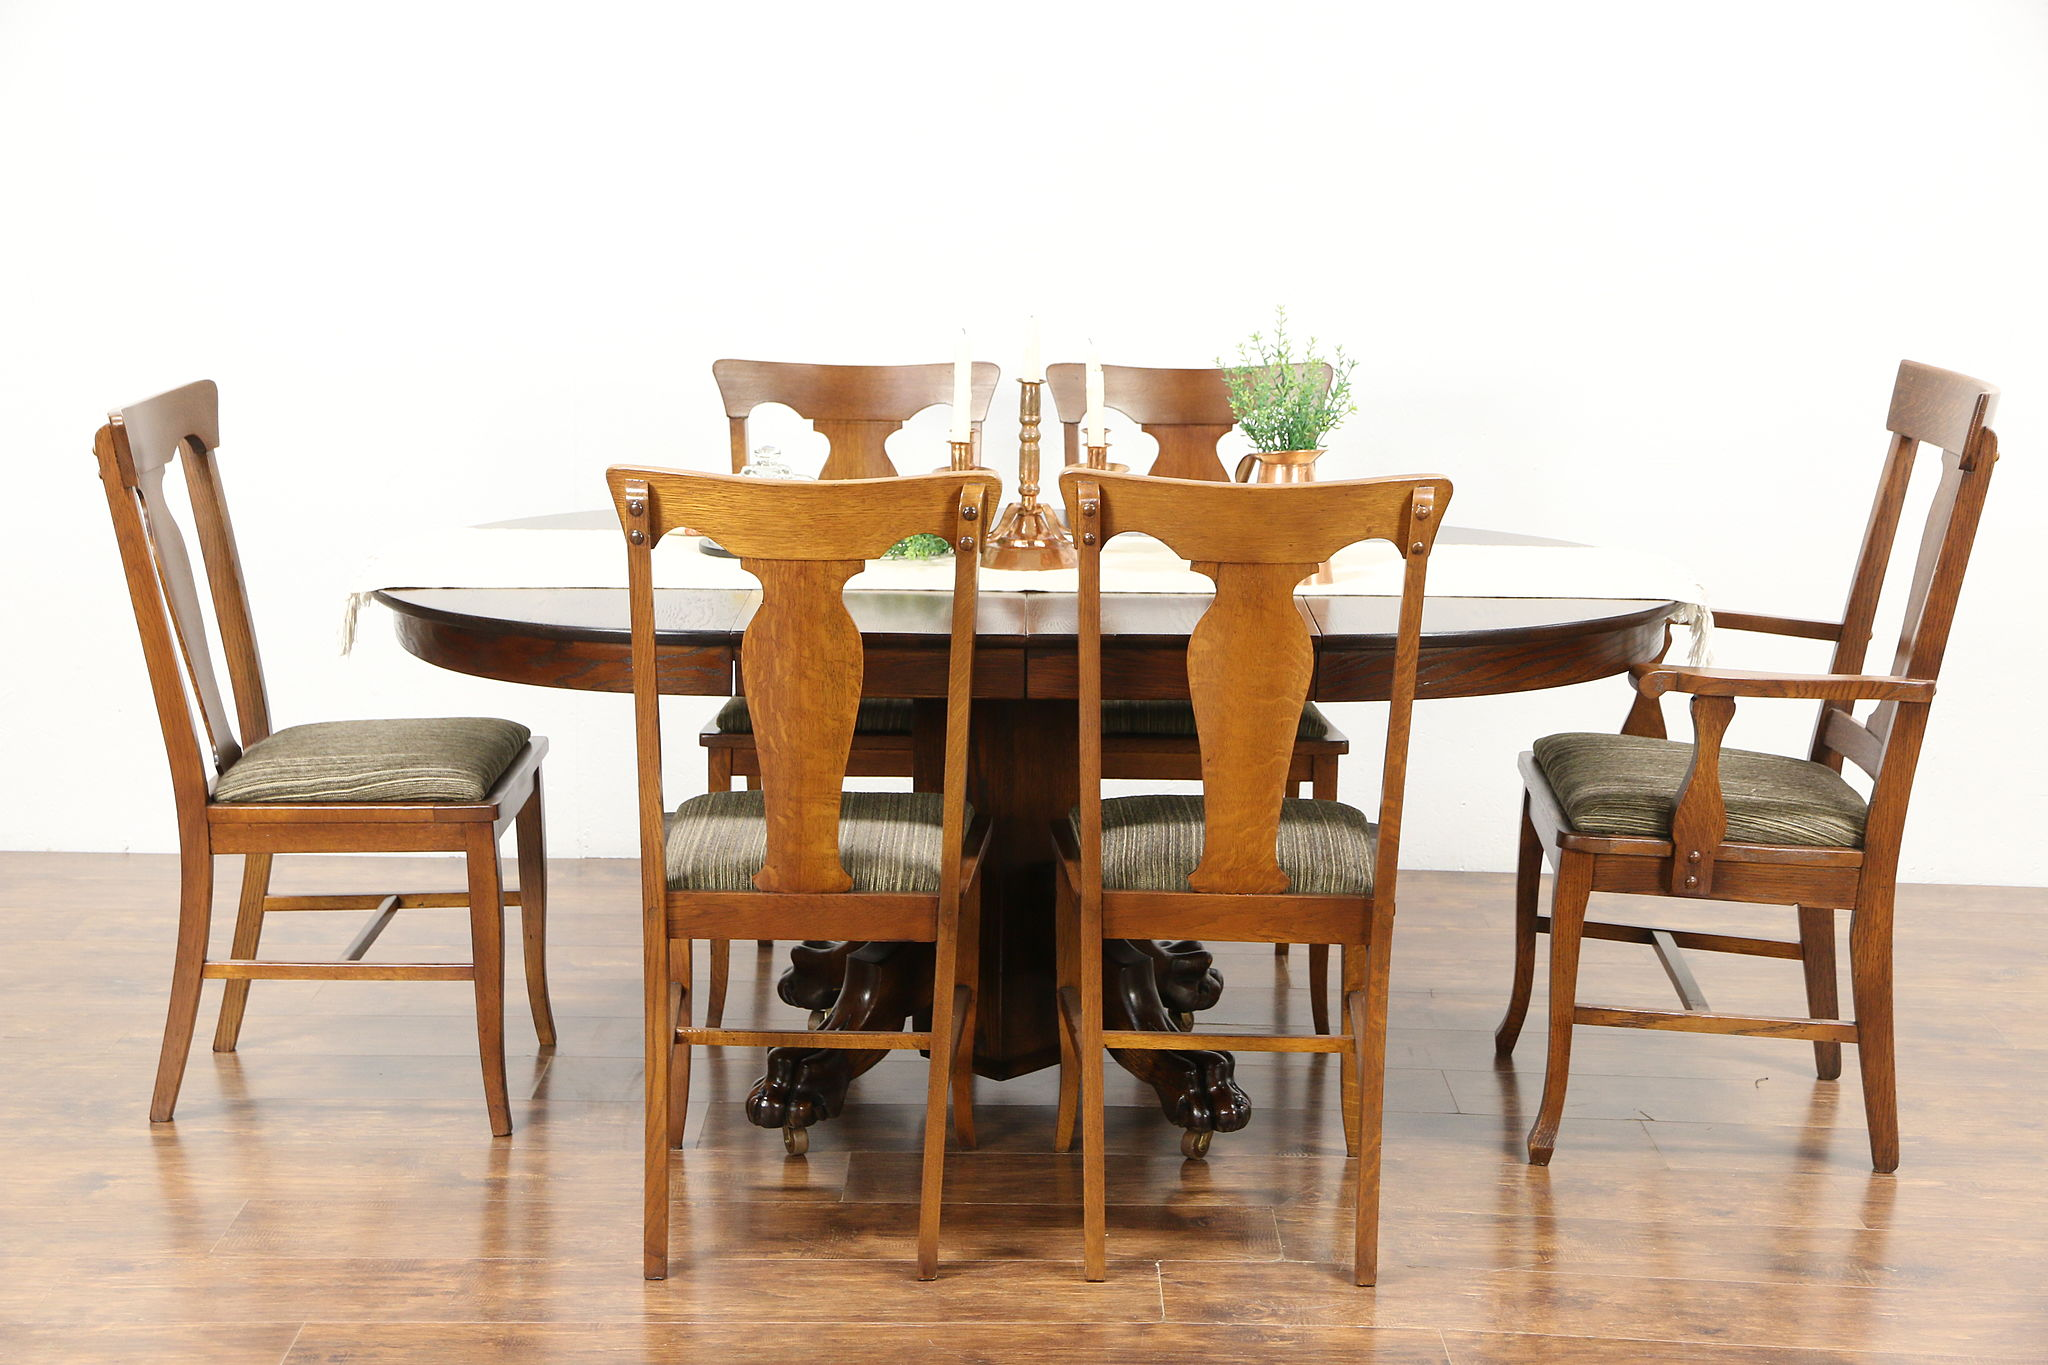 oak 1900 antique 42 round dining table 2 leaves carved lion paw feet - Round Dining Table For 2